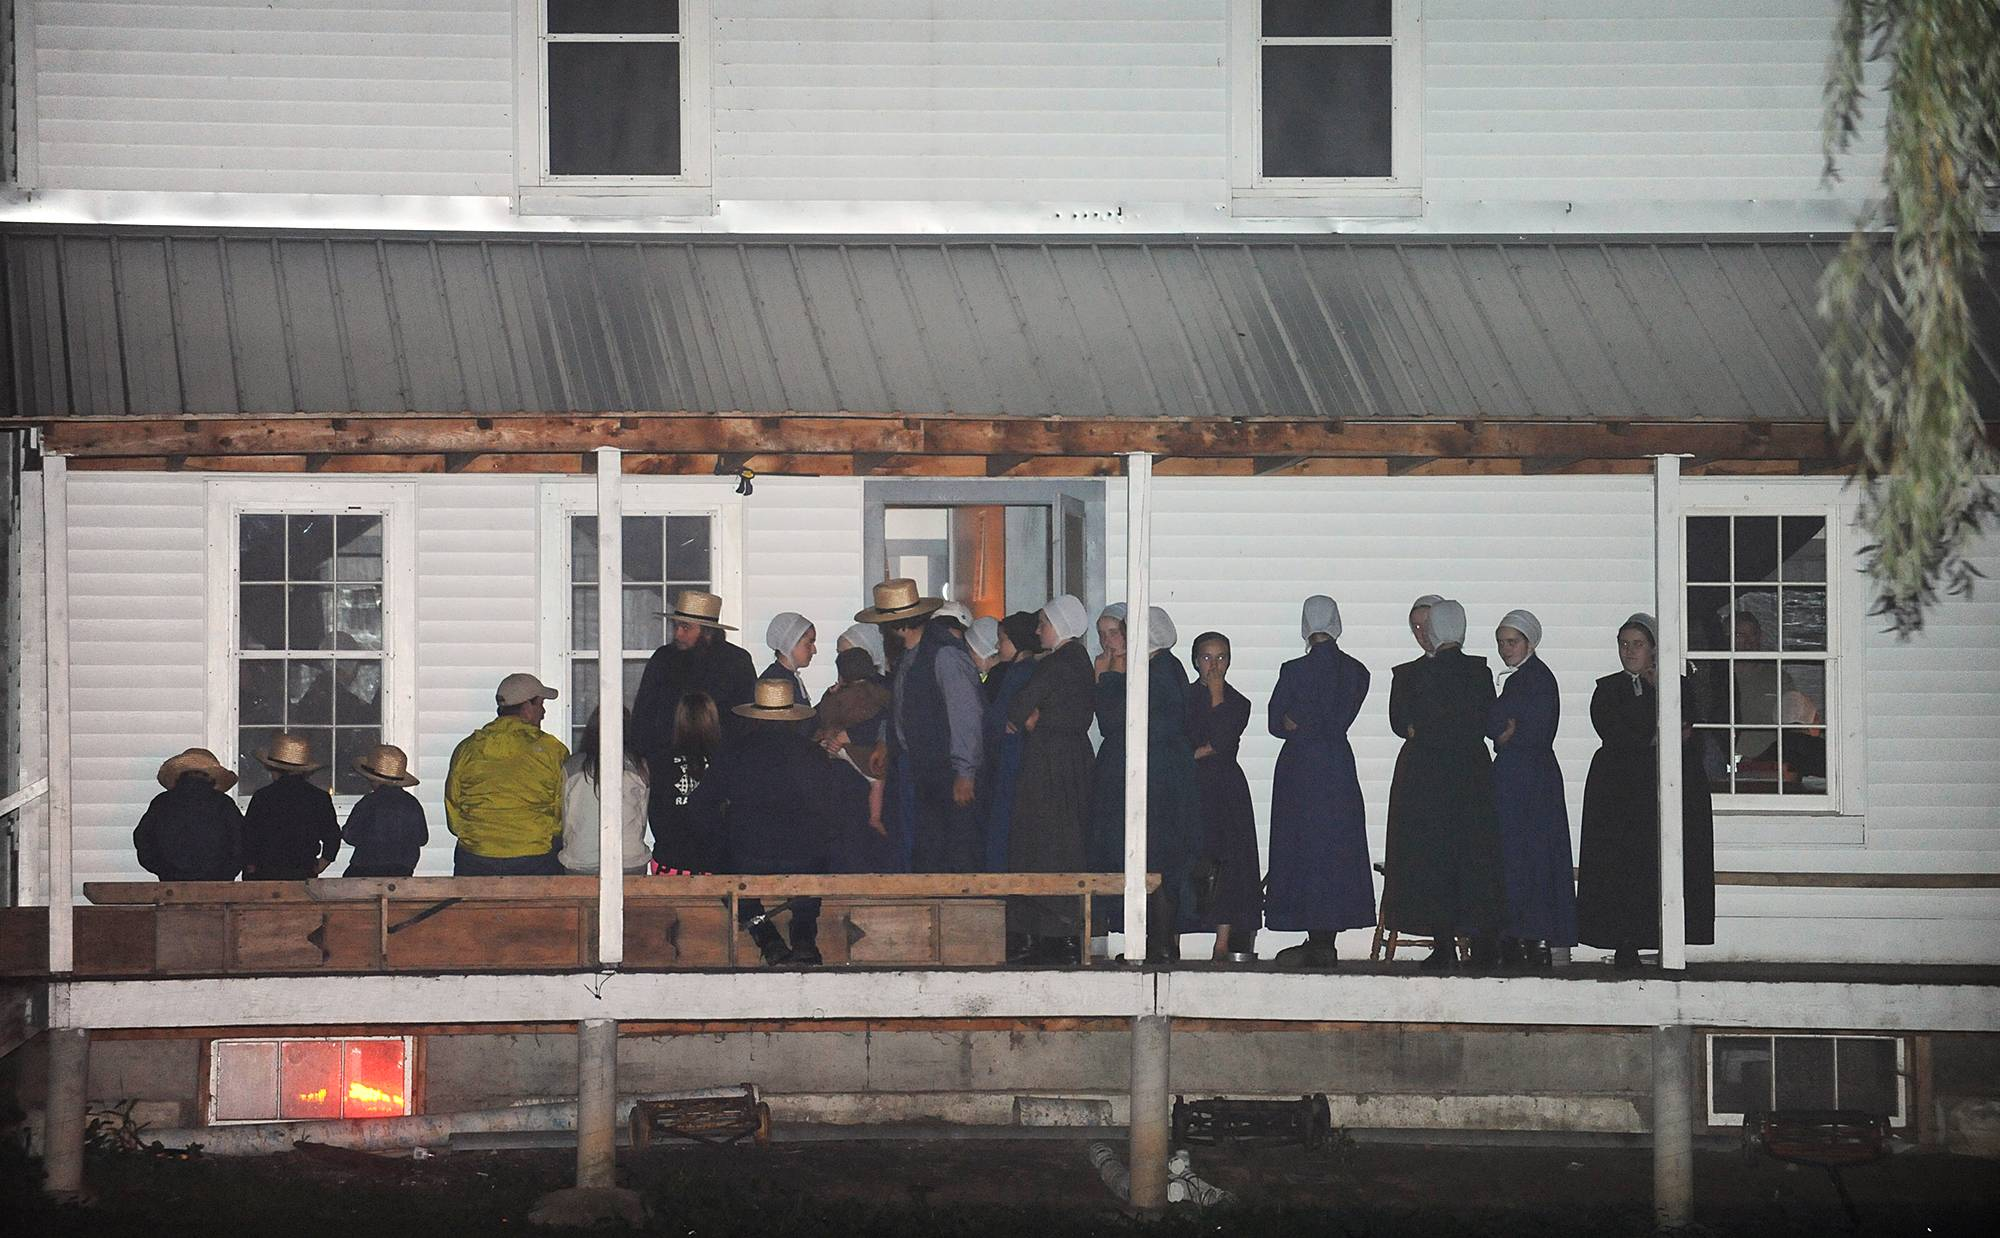 Supporters gather on the porch of a house at the intersection of Route 812 and Mt. Alone Road in Heuvelton, NY on Thursday, Aug. 14, 2014 after Fannie Miller, 12, and her sister Delila Miller, 6, were returned home safely after being abducted Wednesday night at a farm stand near their home.